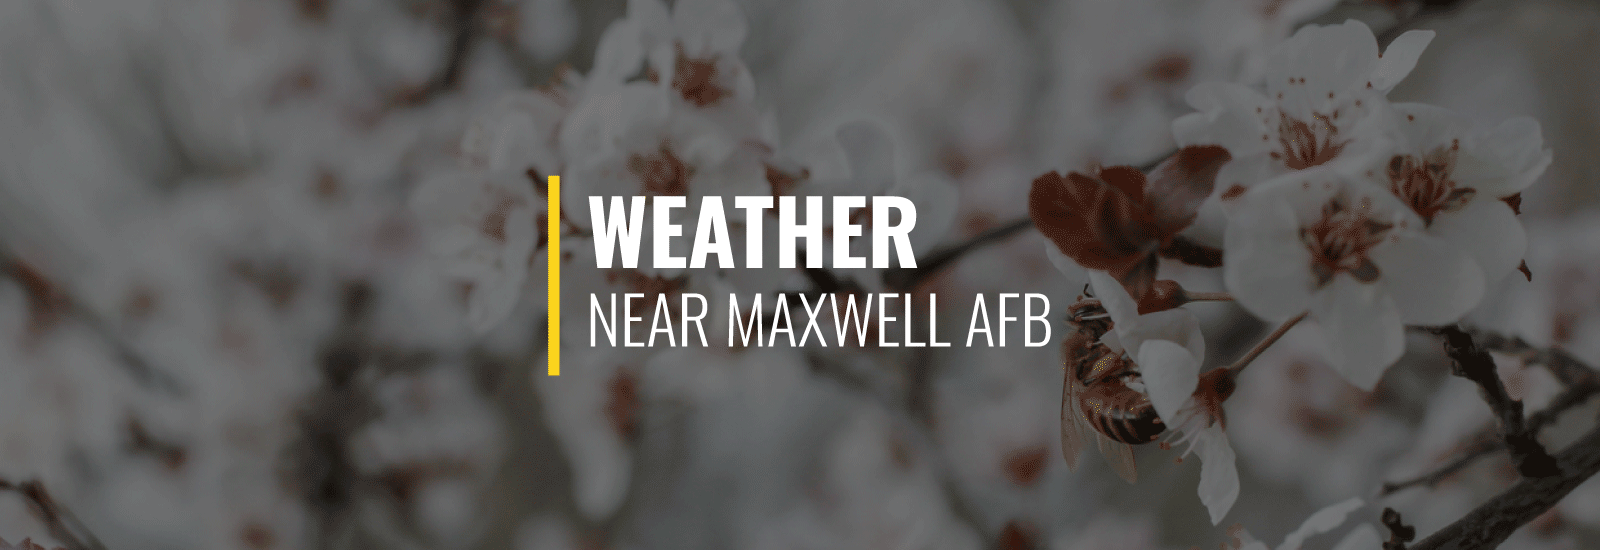 Maxwell AFB Weather